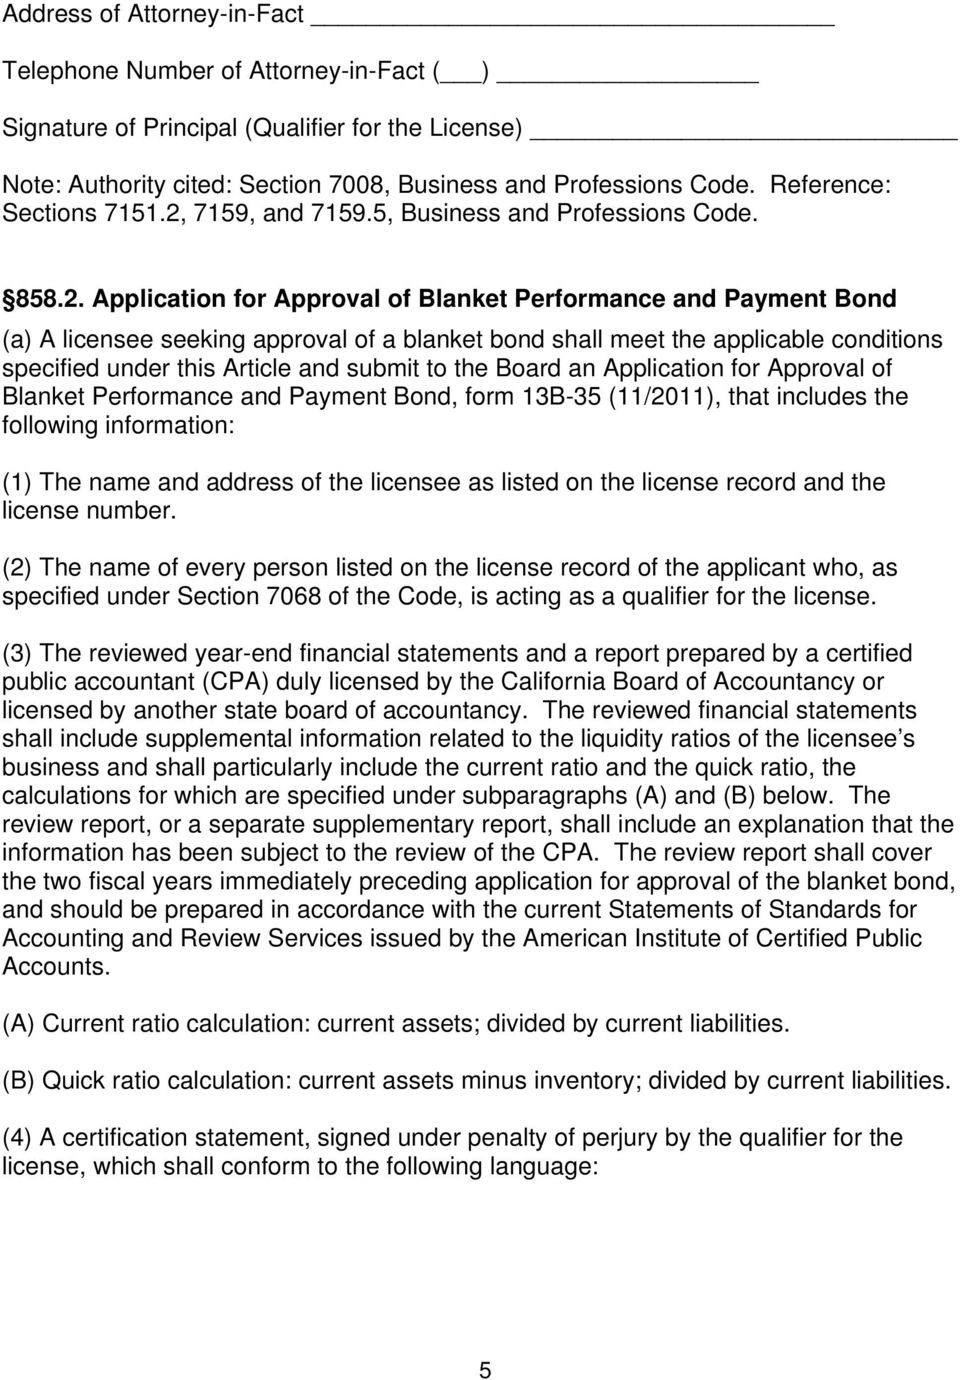 Application for Approval of Blanket Performance and Payment Bond (a) A licensee seeking approval of a blanket bond shall meet the applicable conditions specified under this Article and submit to the